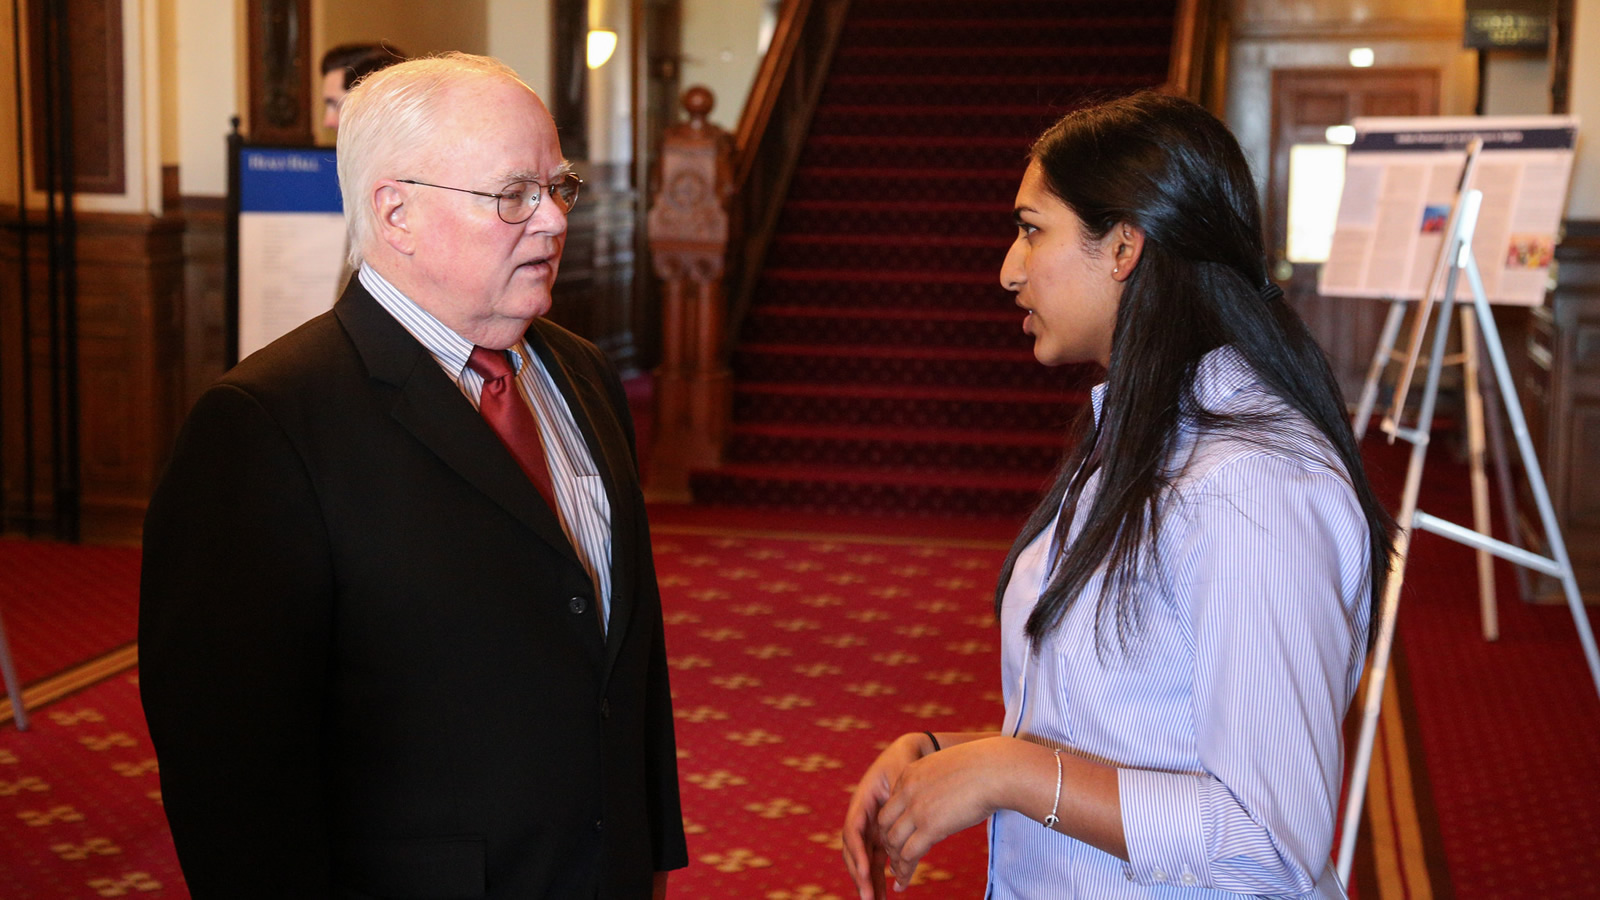 Fr. David Hollenbach, S.J., Talking with Senior Harshita Nadimpalli